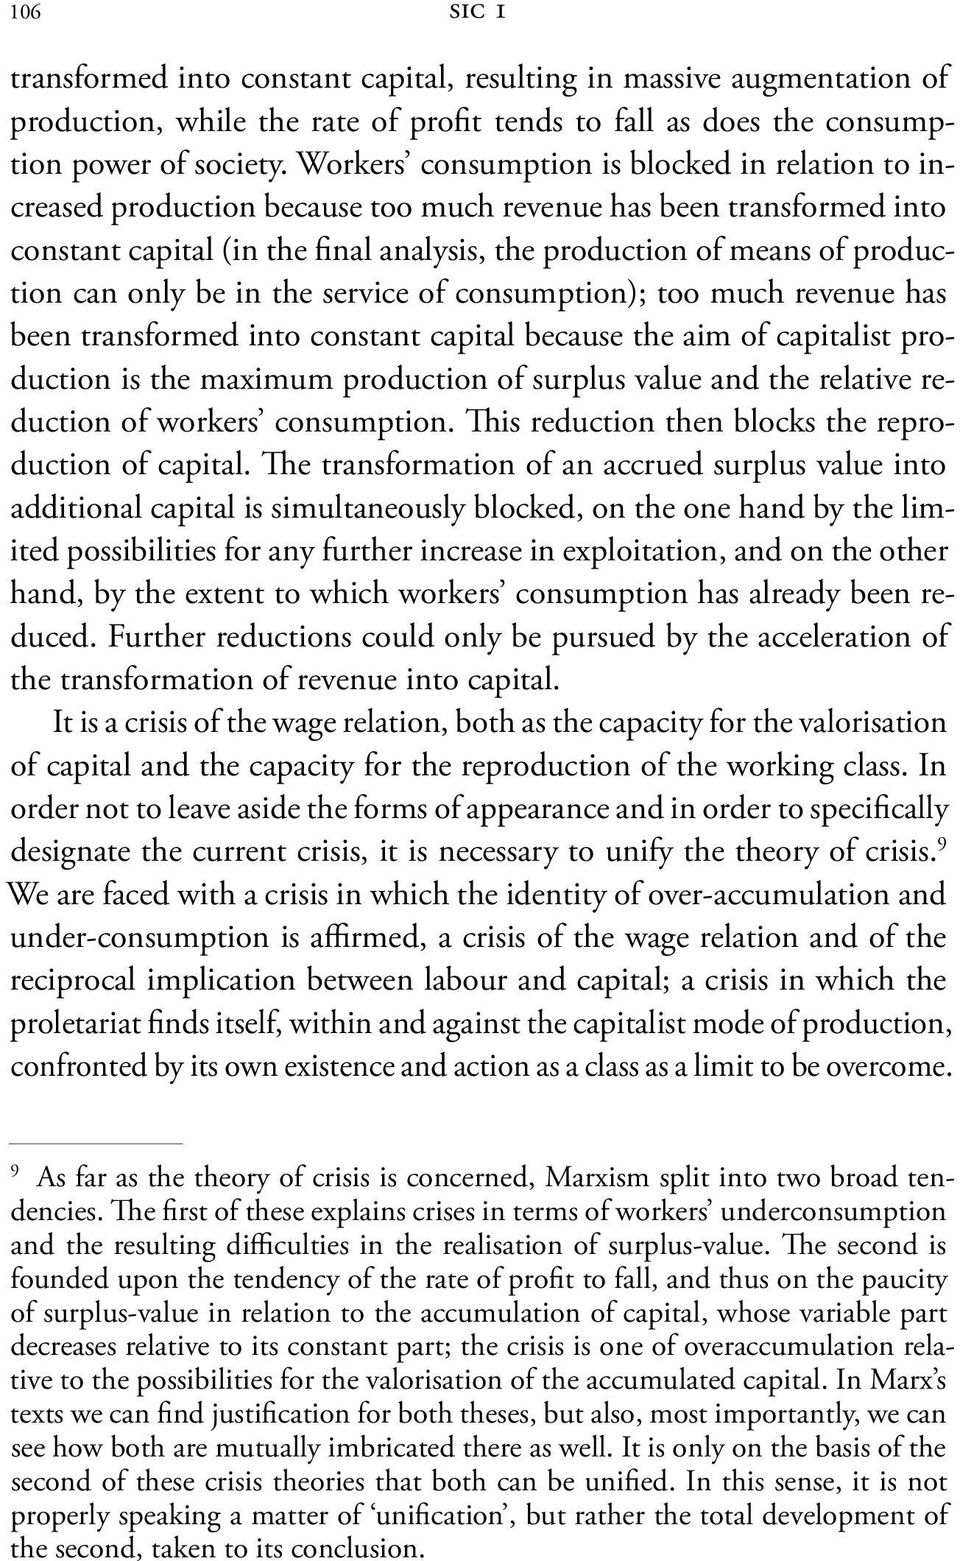 can only be in the service of consumption); too much revenue has been transformed into constant capital because the aim of capitalist production is the maximum production of surplus value and the